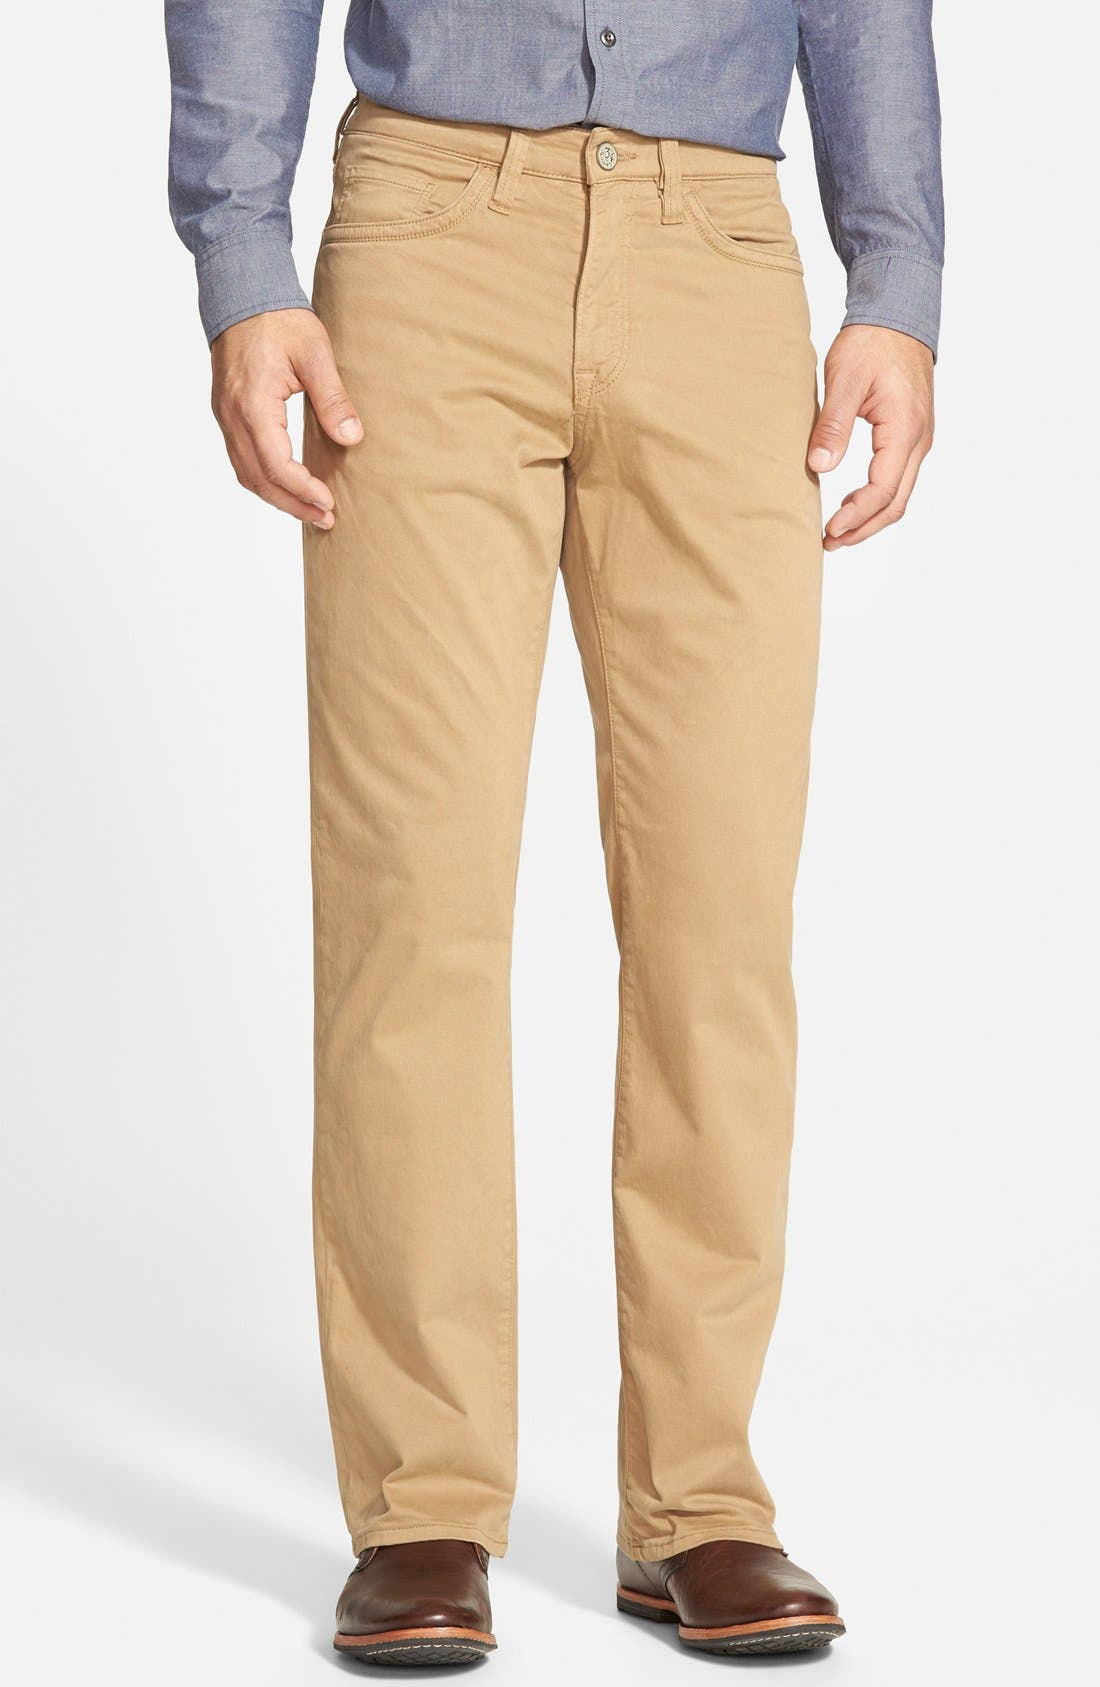 'Charisma' Classic Relaxed Fit Pants,                             Main thumbnail 1, color,                             Beige/ Khaki